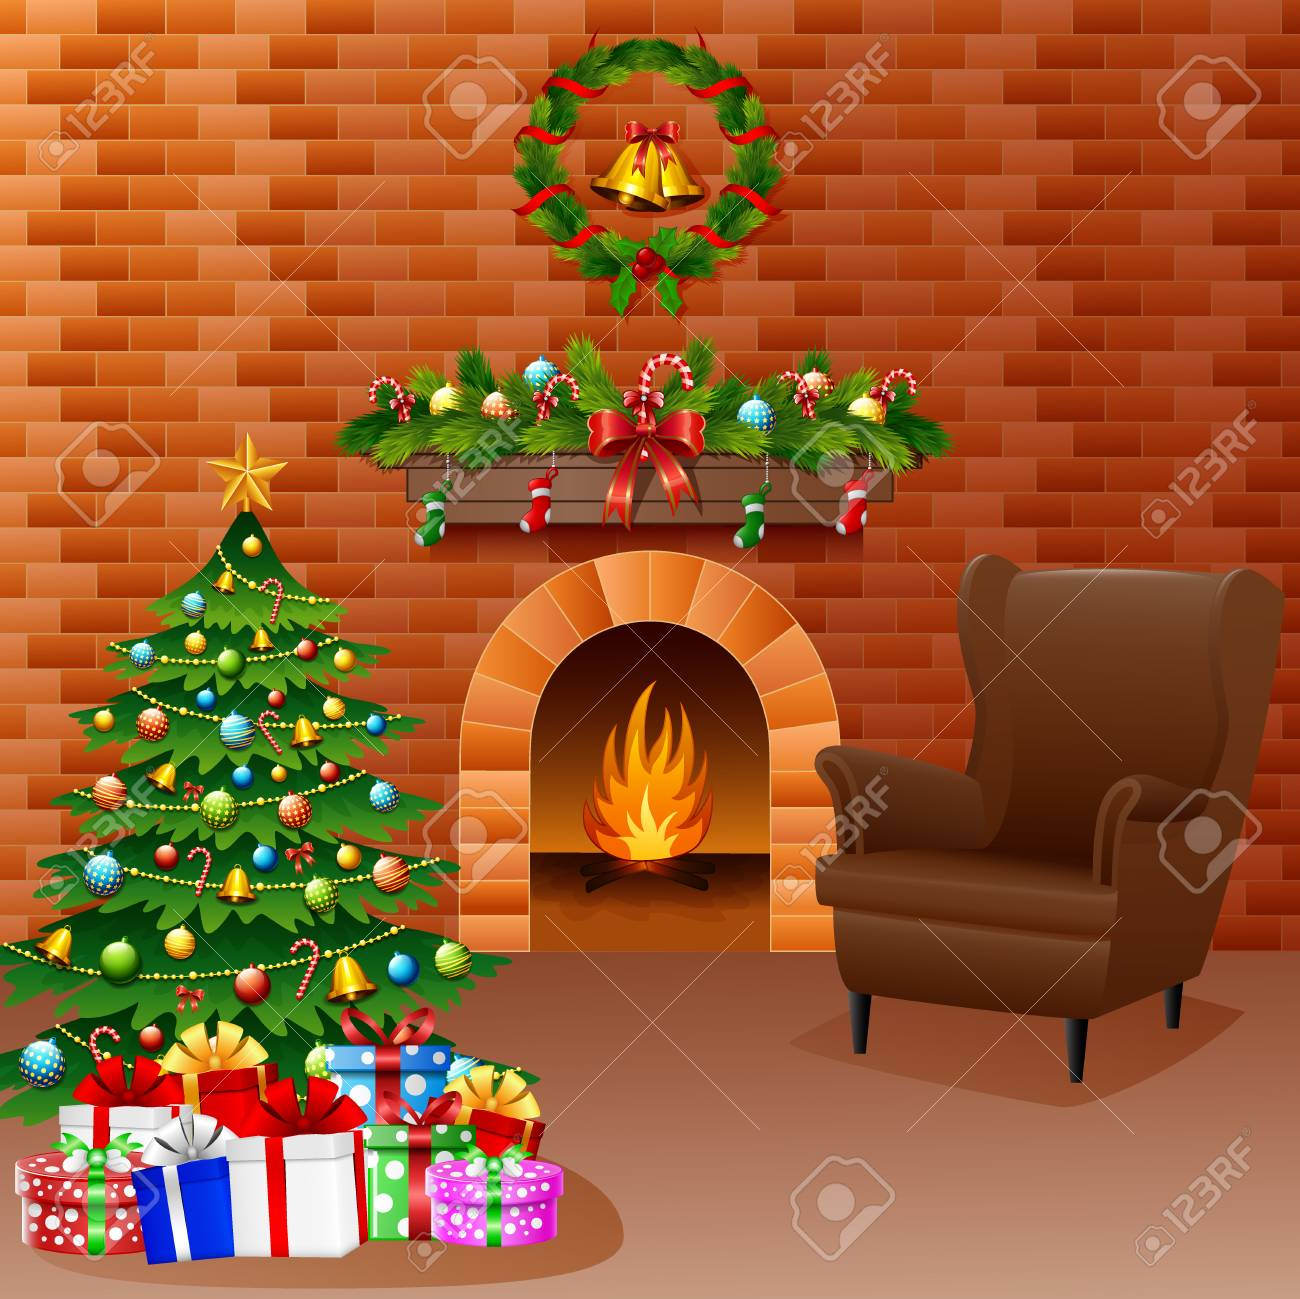 Vector illustration of Christmas fireplace with Christmas tree, presents, and sofa. - 90064831